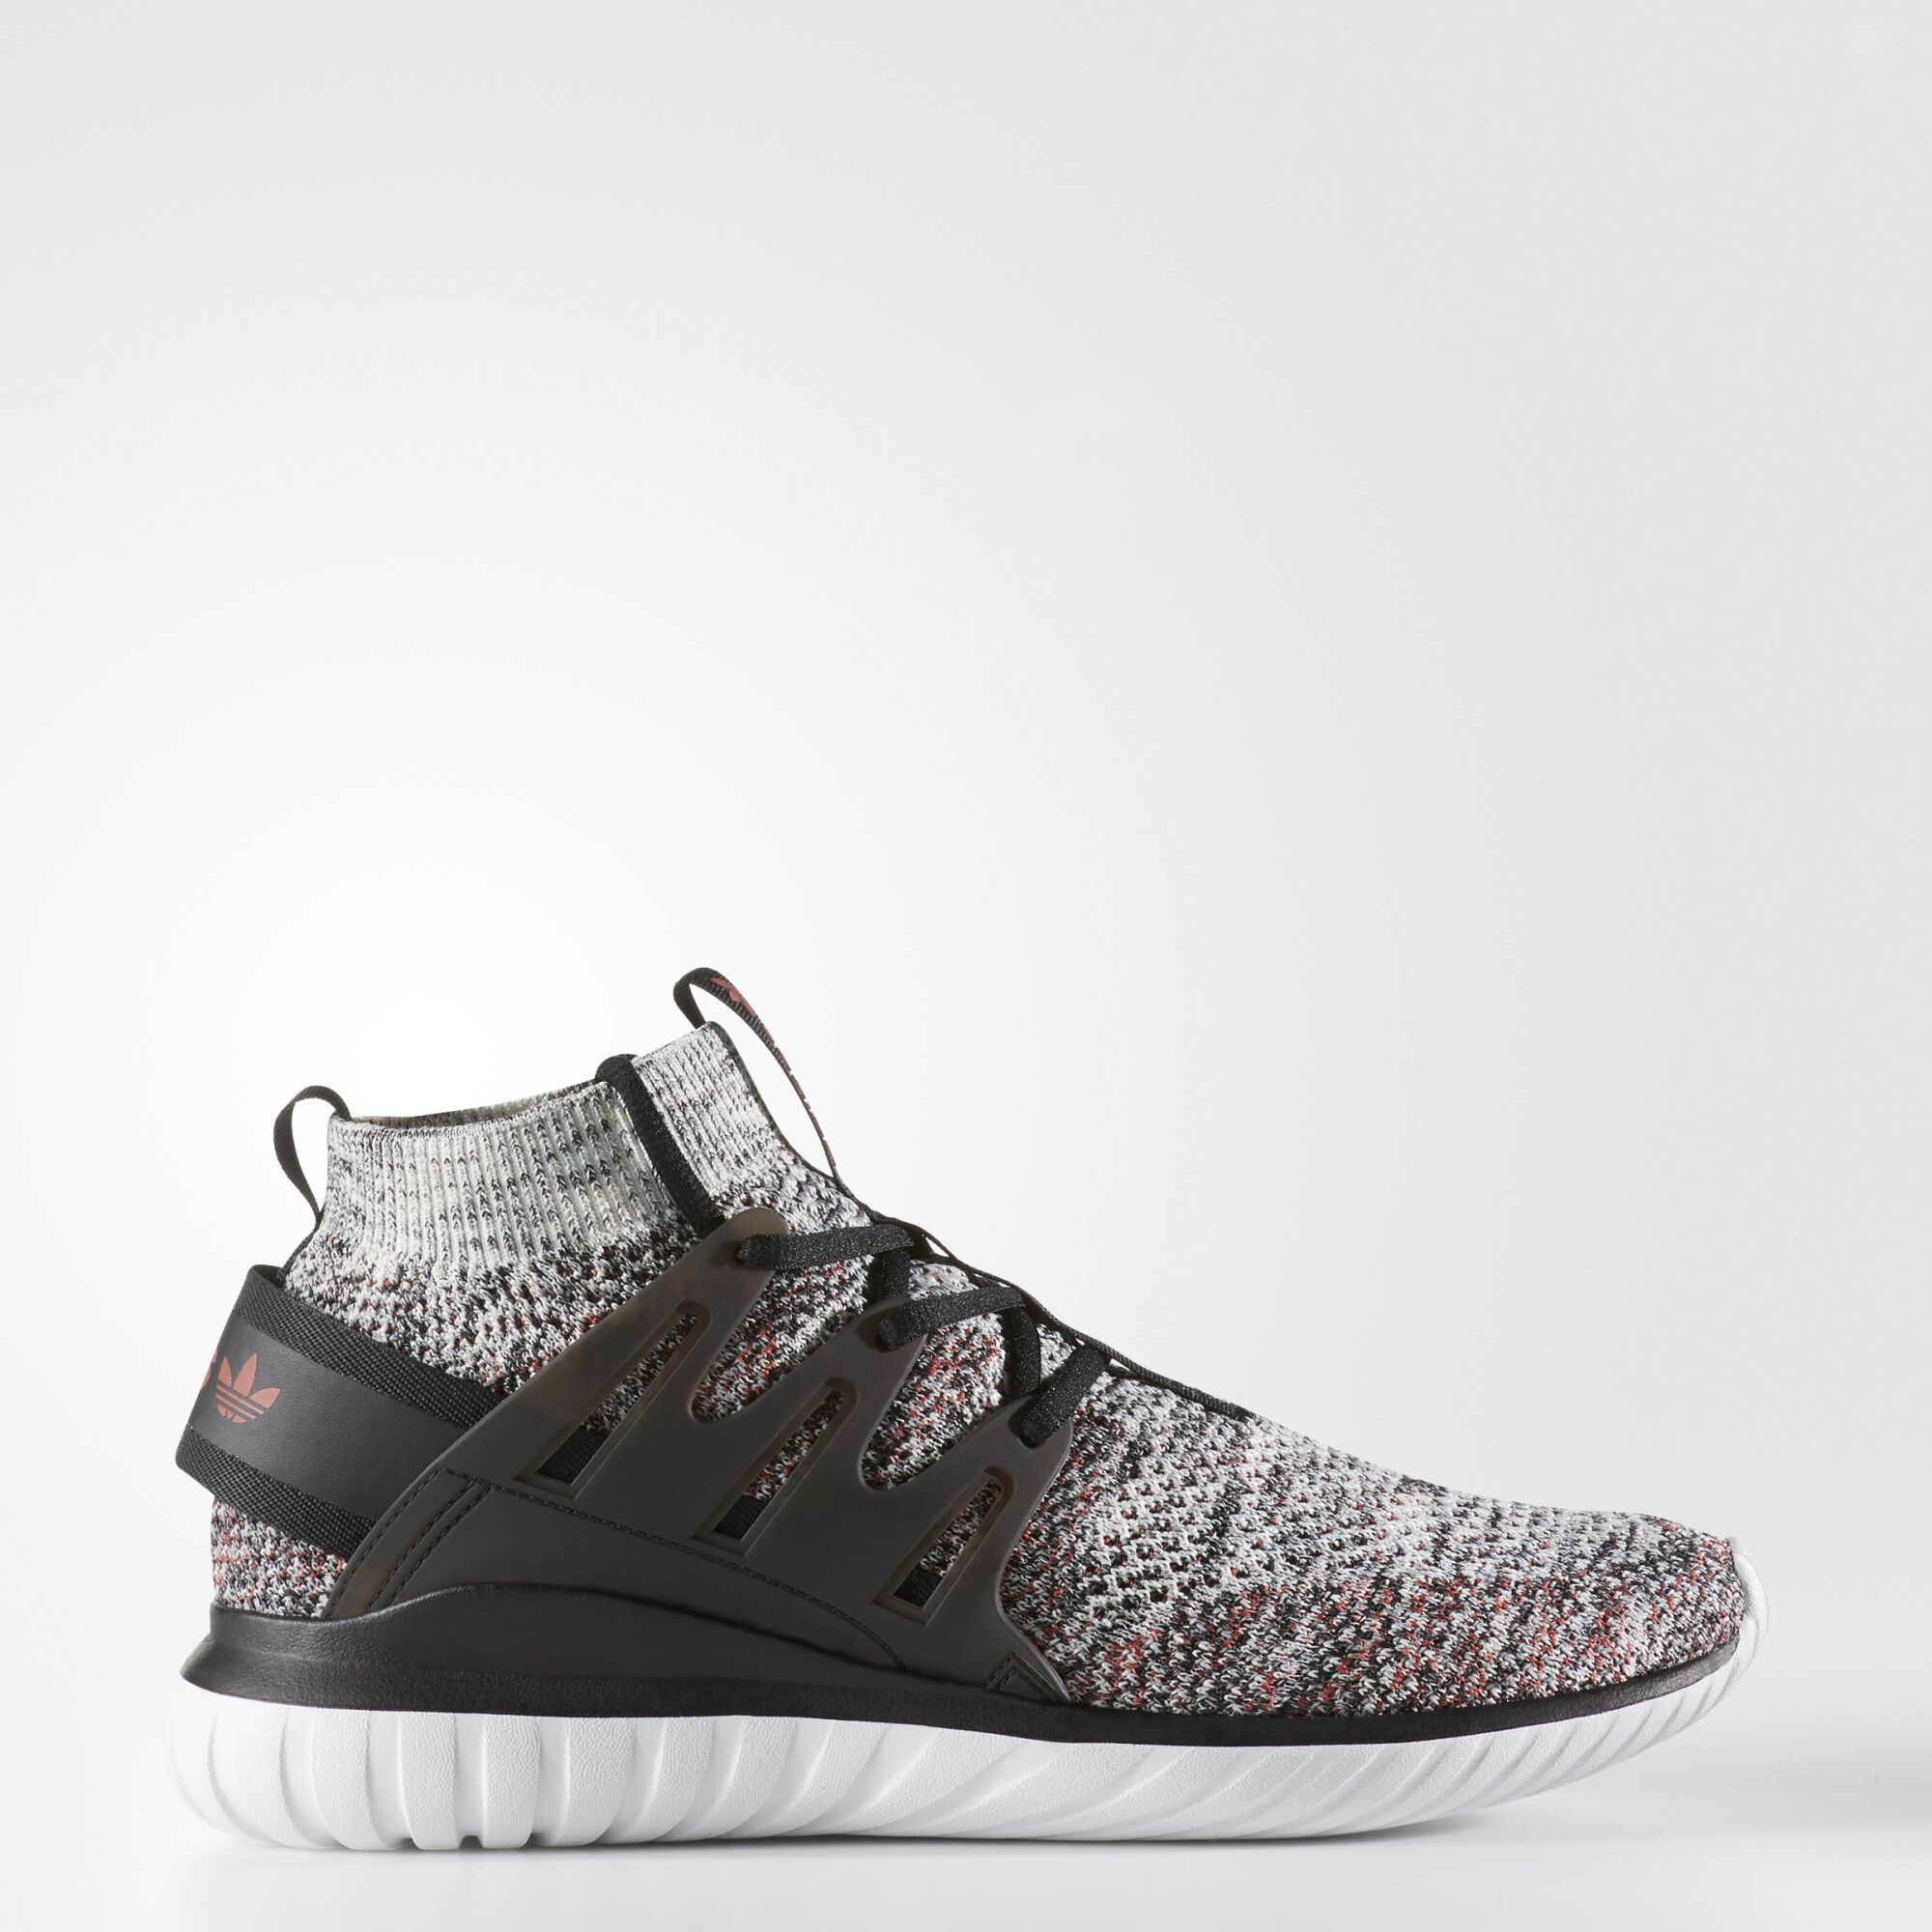 Adidas Tubular Primeknit Brown